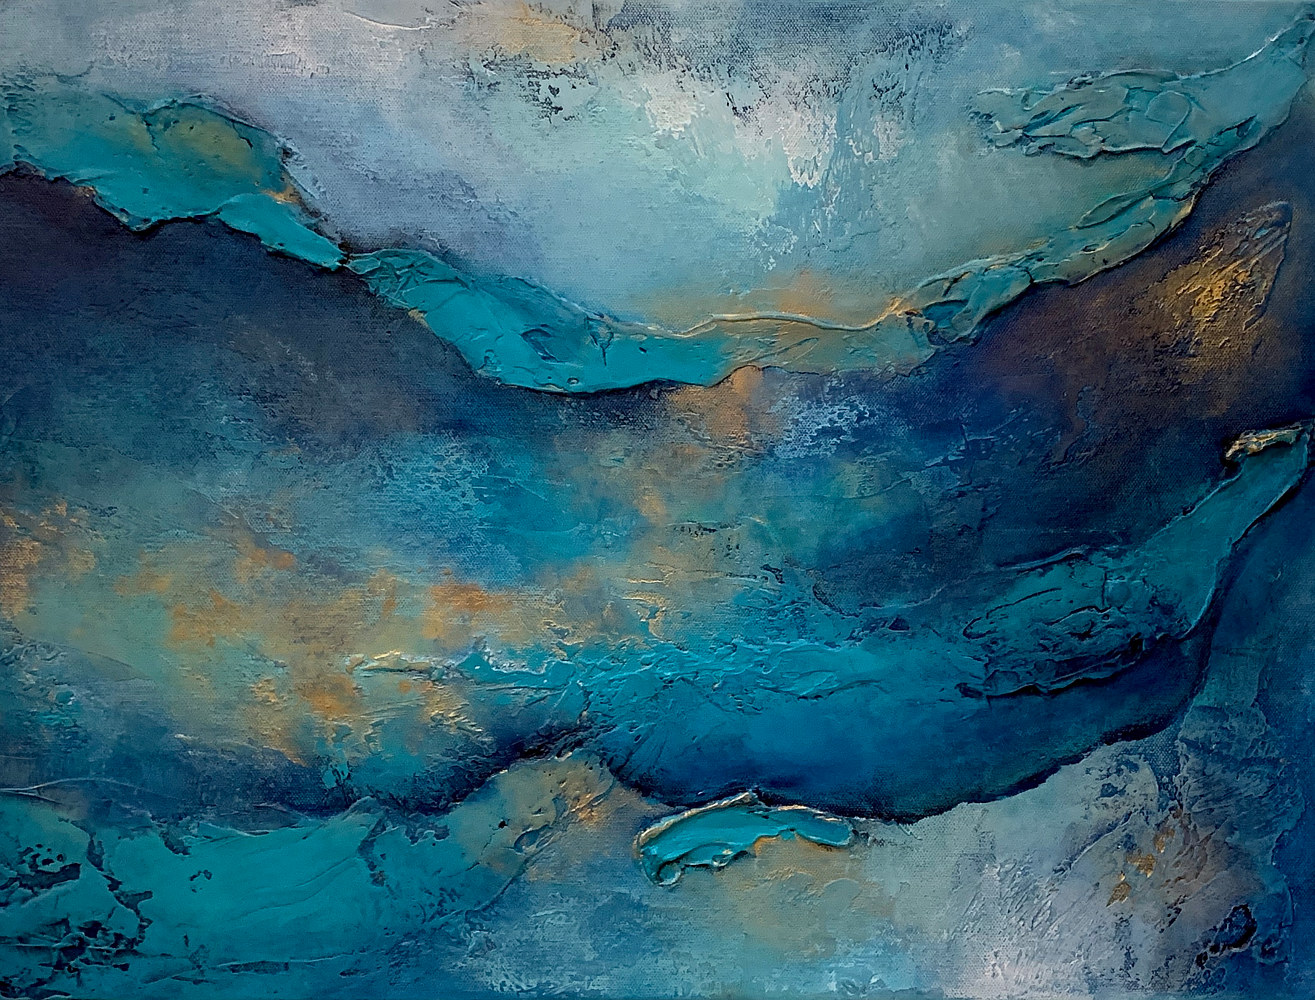 Acrylic painting Parting Waters by Ginger Thomas